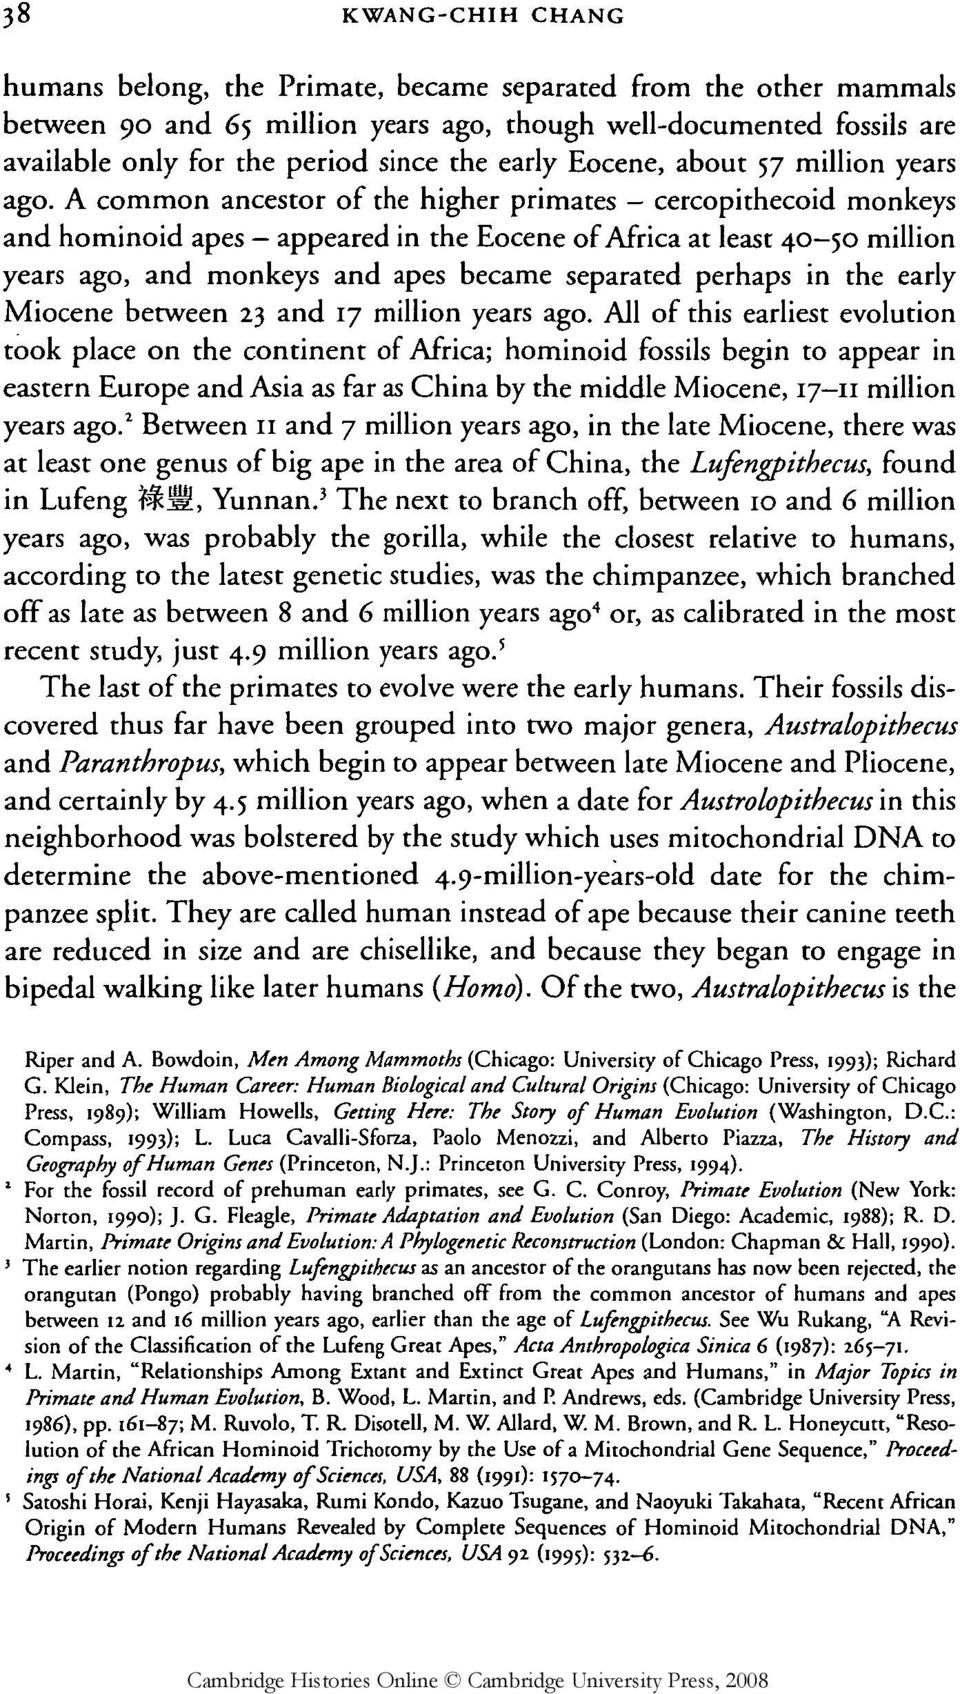 A common ancestor of the higher primates - cercopithecoid monkeys and hominoid apes - appeared in the Eocene of Africa at least 40-50 million years ago, and monkeys and apes became separated perhaps